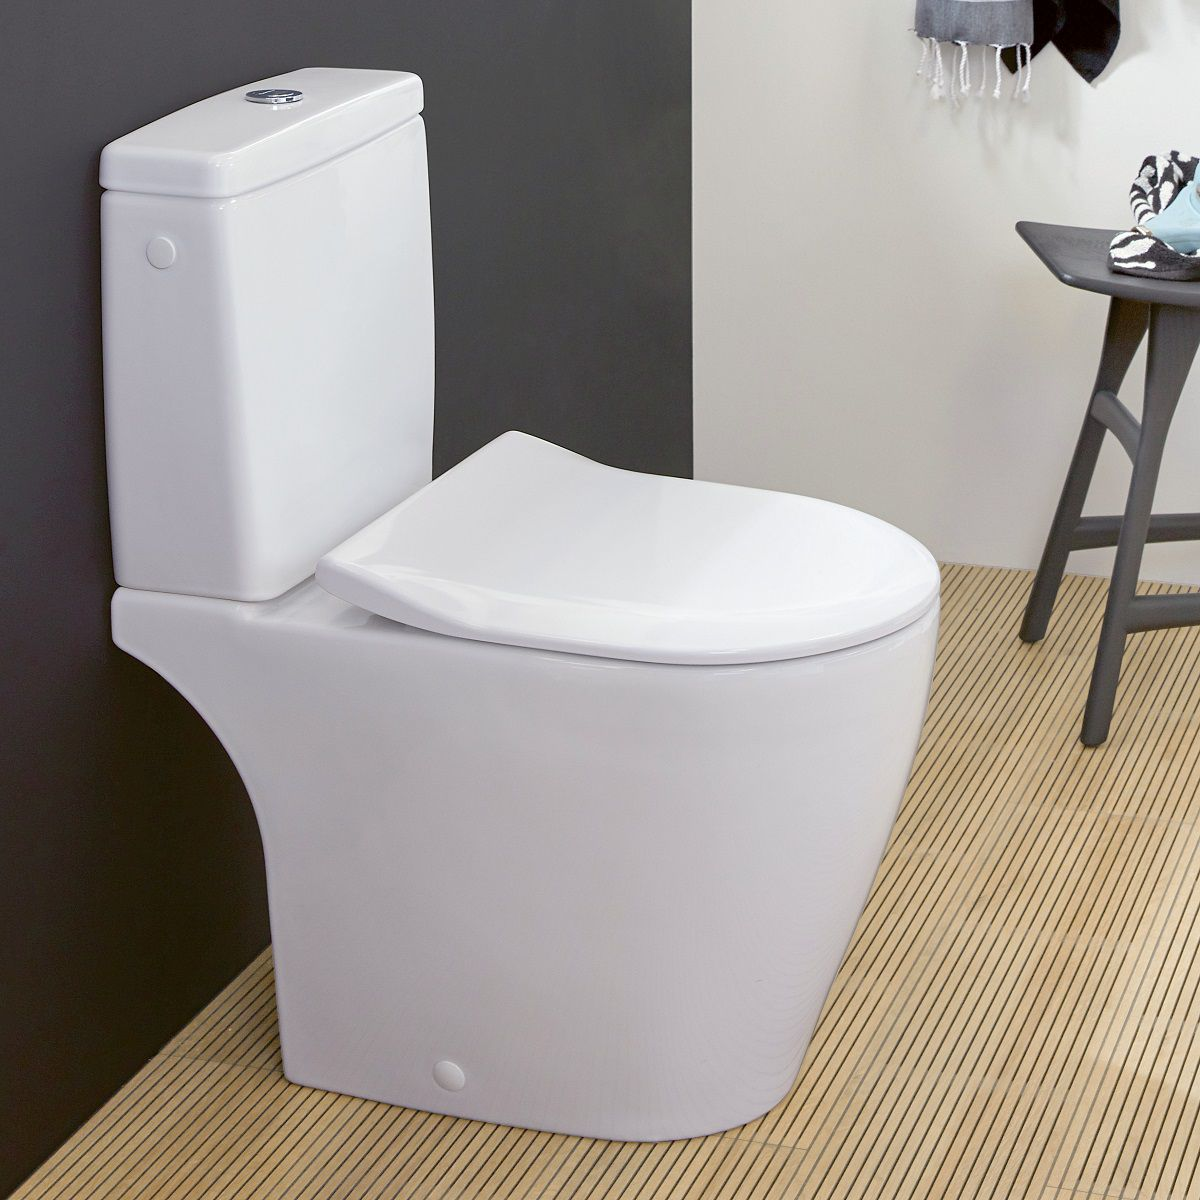 Villeroy & Boch Avento DirectFlush Close Coupled WC